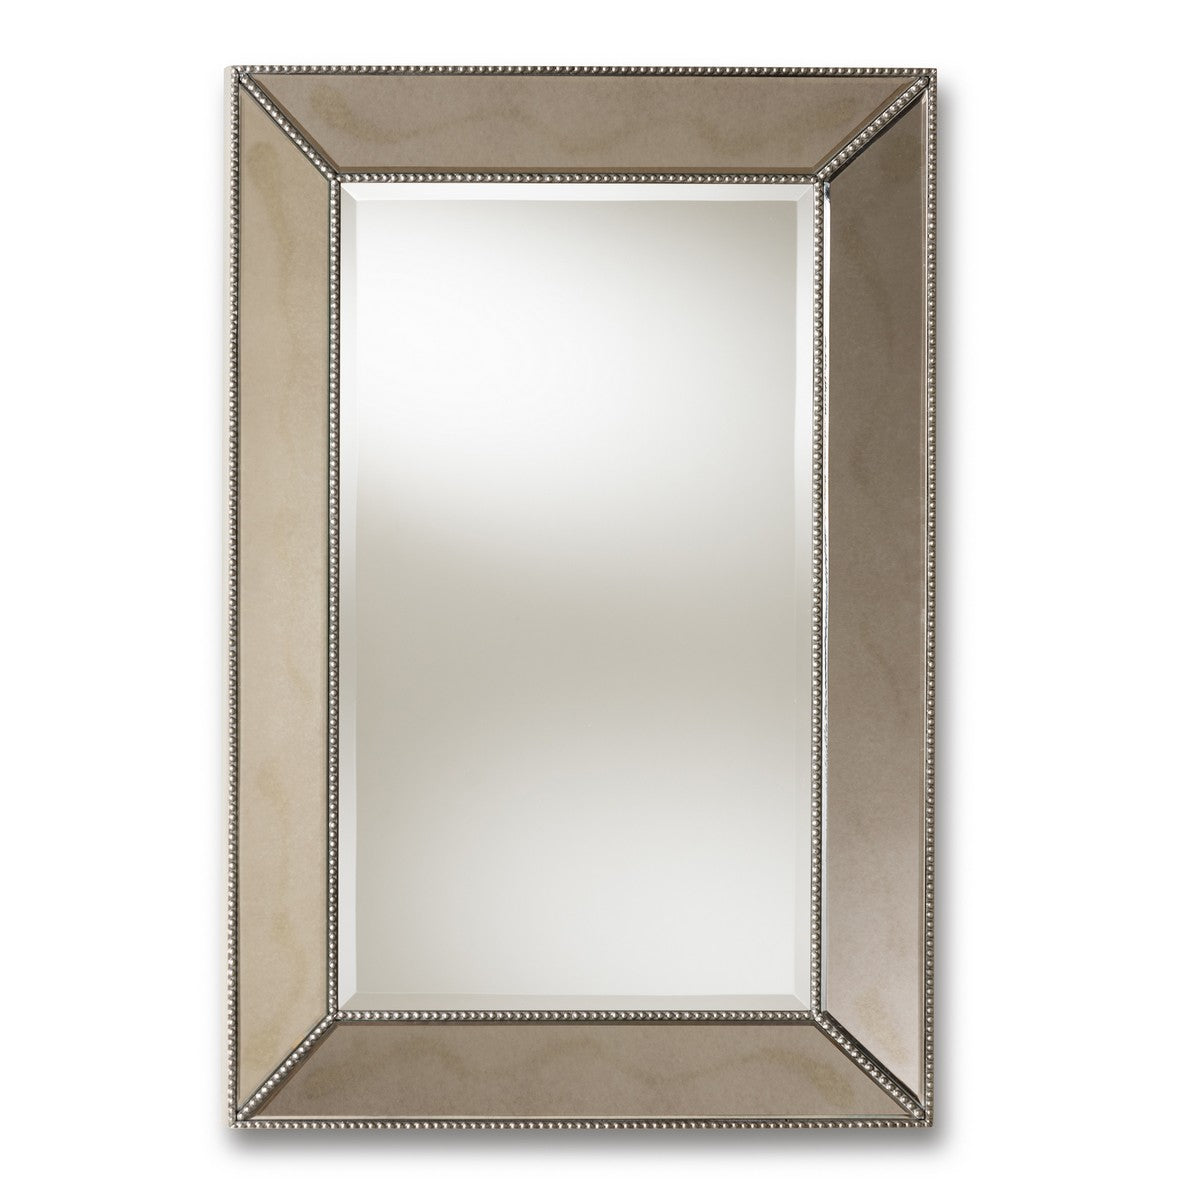 Baxton Studio Emelie Modern and Contemporary Antique Silver Finished Accent Wall Mirror Baxton Studio-mirrors-Minimal And Modern - 1